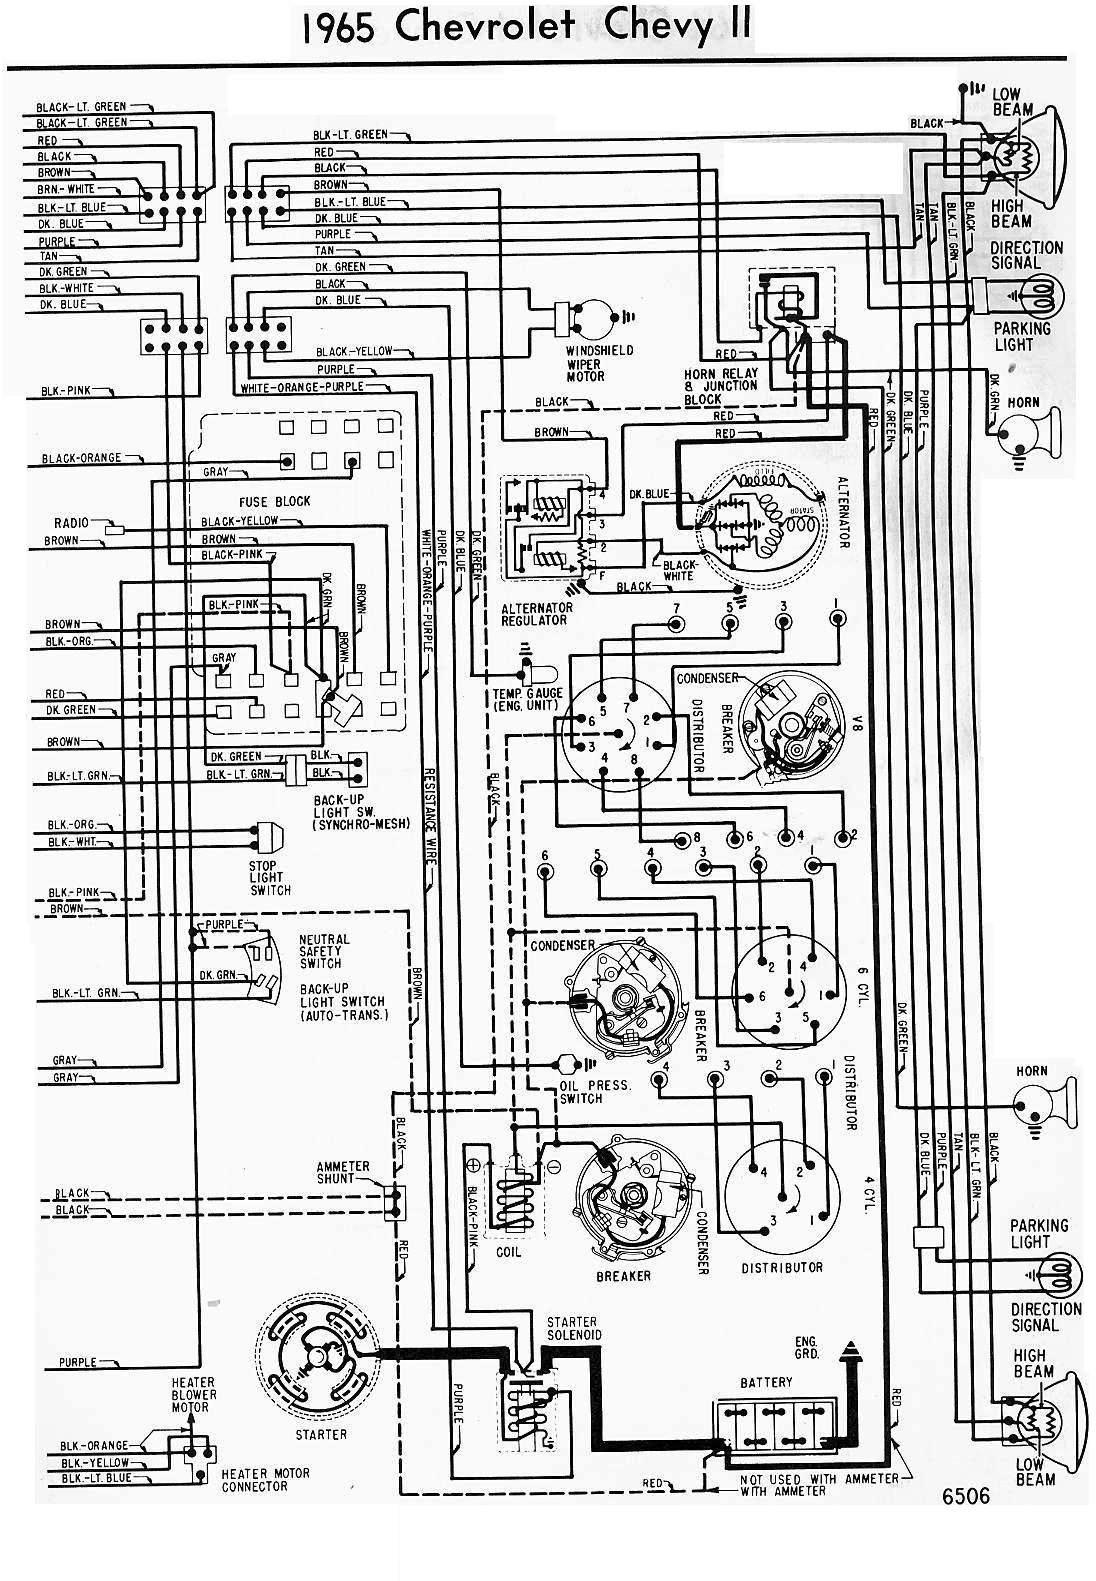 hight resolution of 1966 impala wiring schematic wiring library1965 chevrolet chevy ii wiring diagram